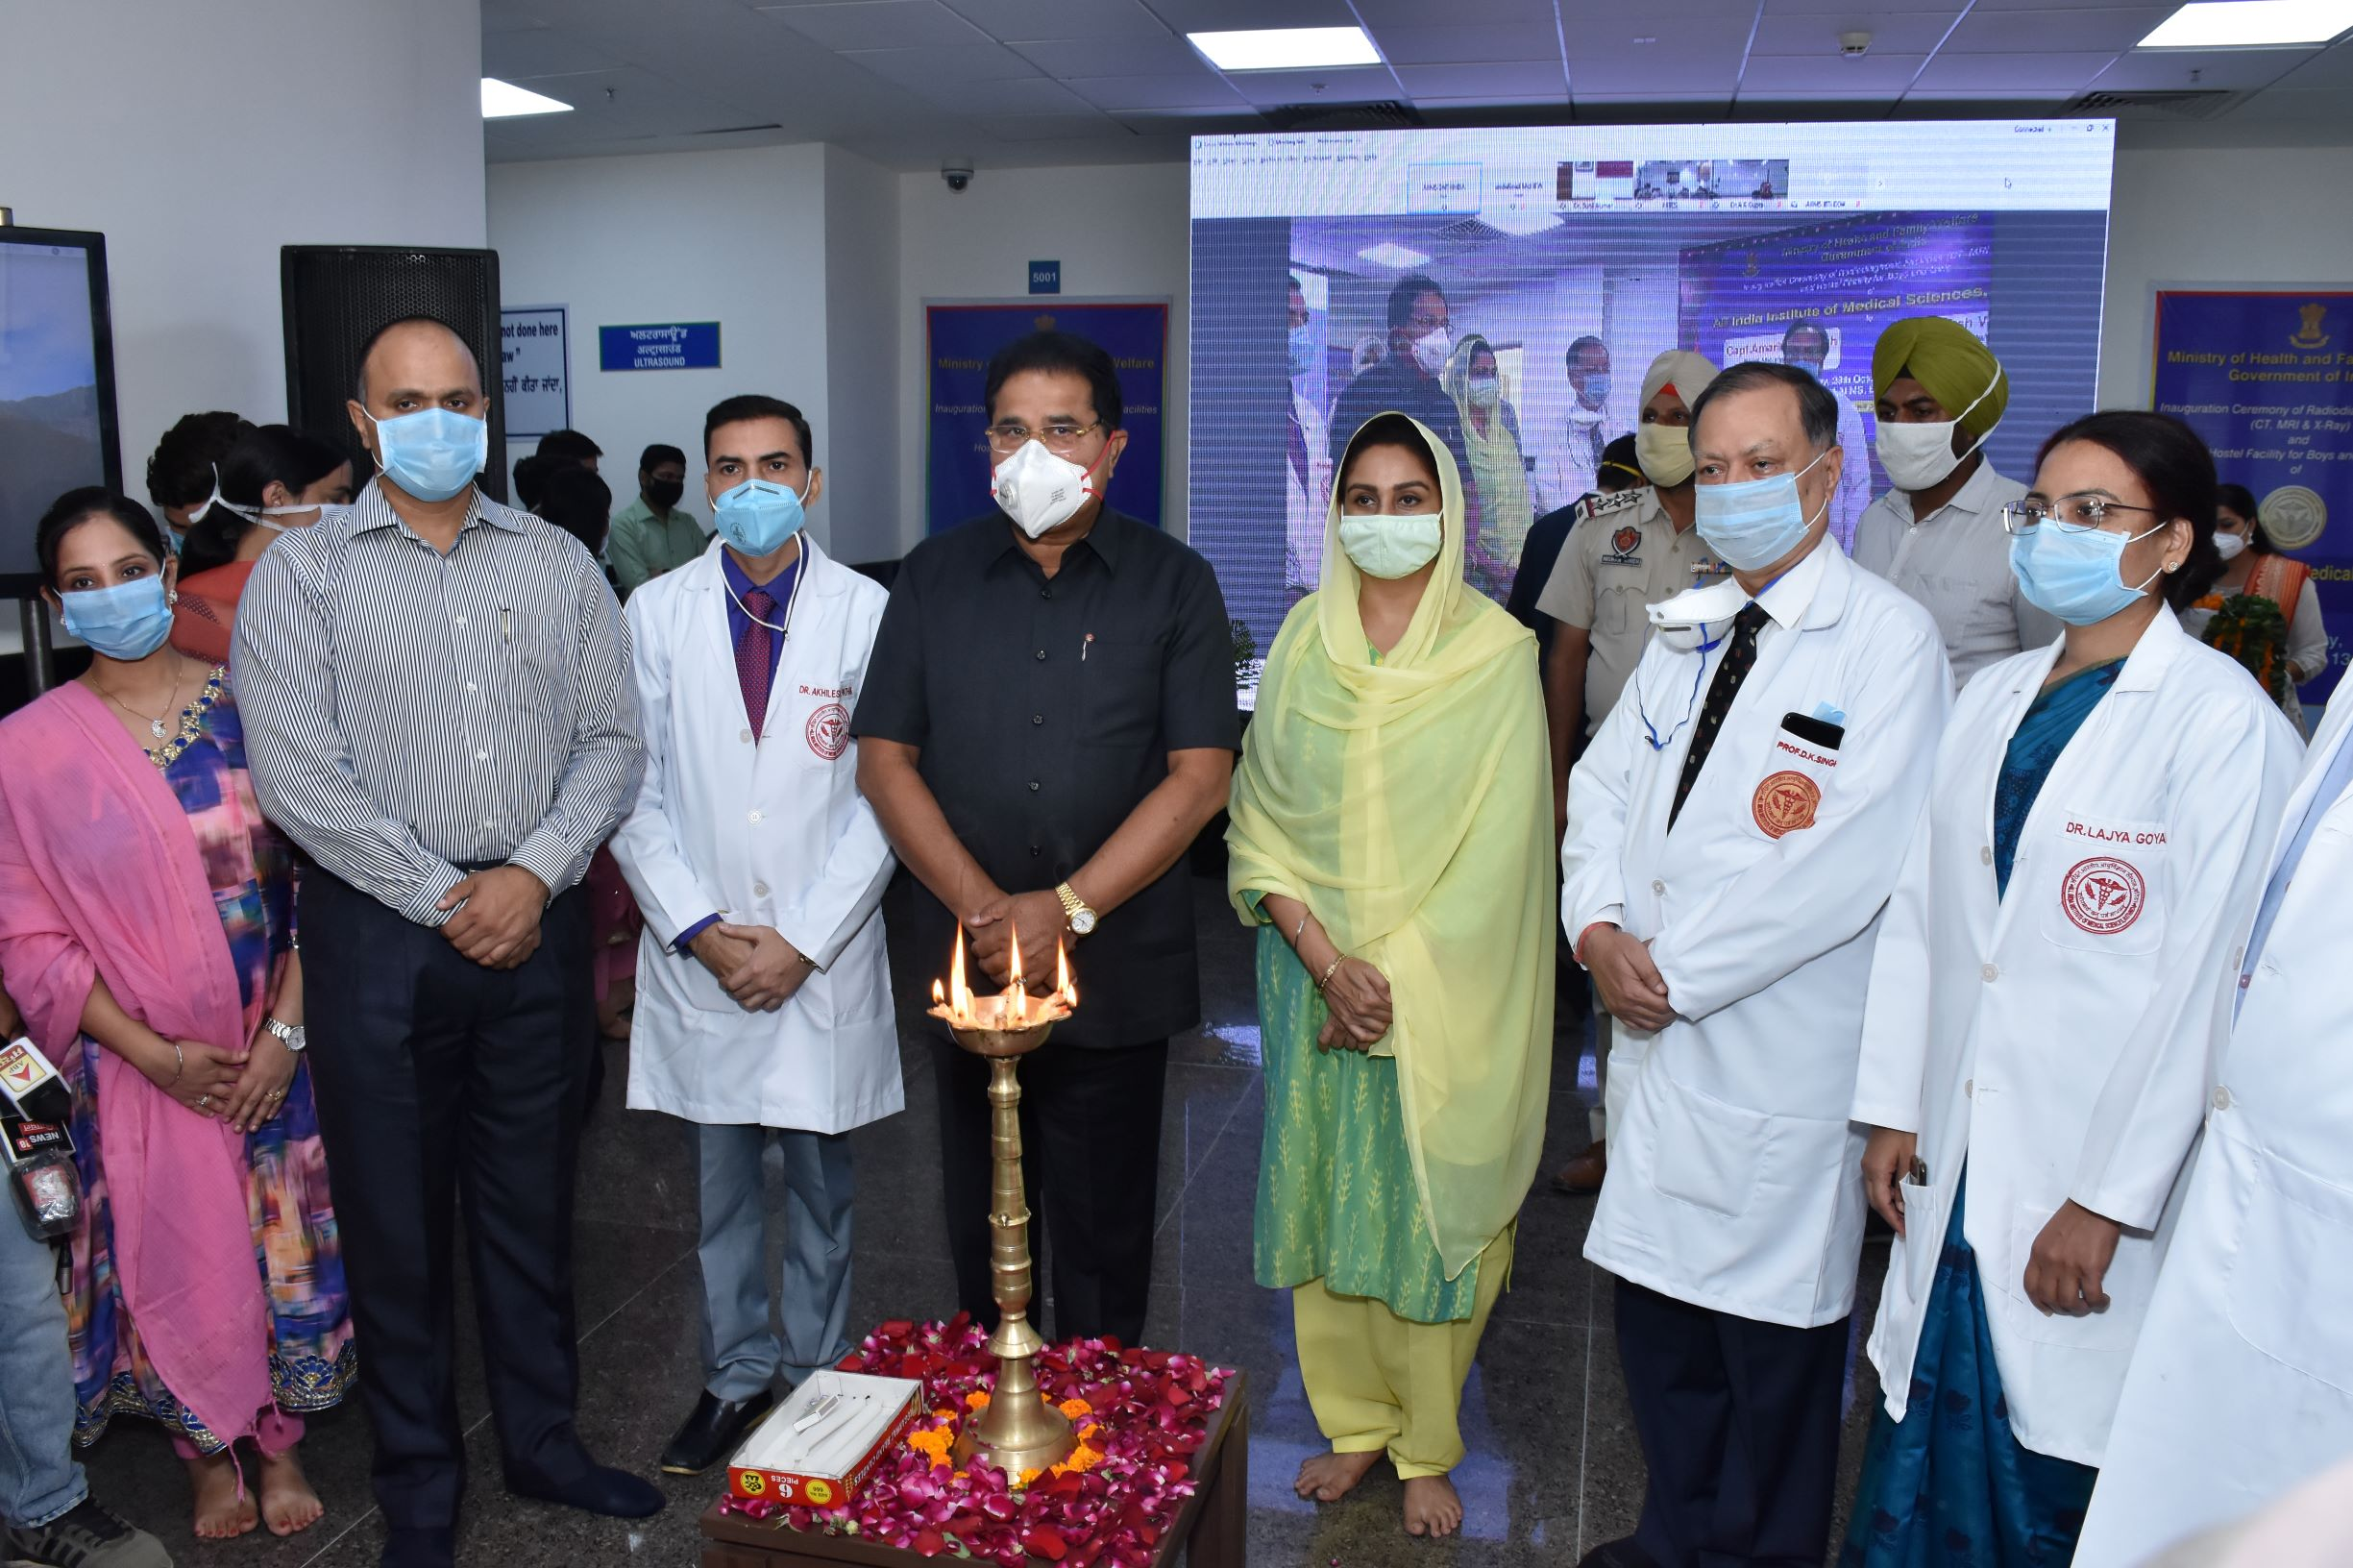 Inauguration ceremony of CT and MRI at AIIMS Bathinda on 28.11.2020 by Union Minister of Health and Family Welfare, Dr Harsh Vardhan